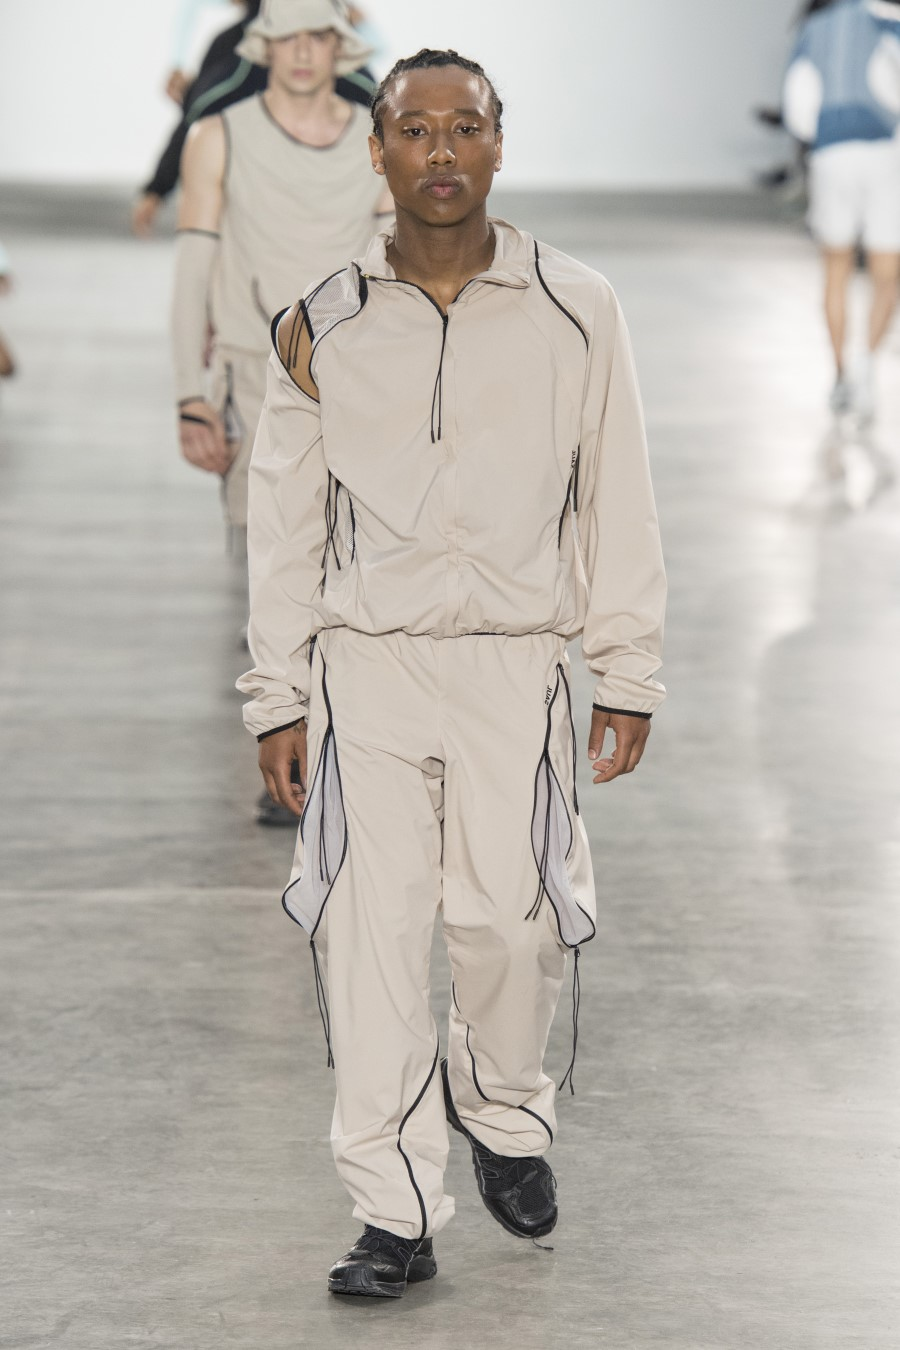 Fashion East - Saul Nash - Printemps-Été 2020 - London Fashion Week Men's